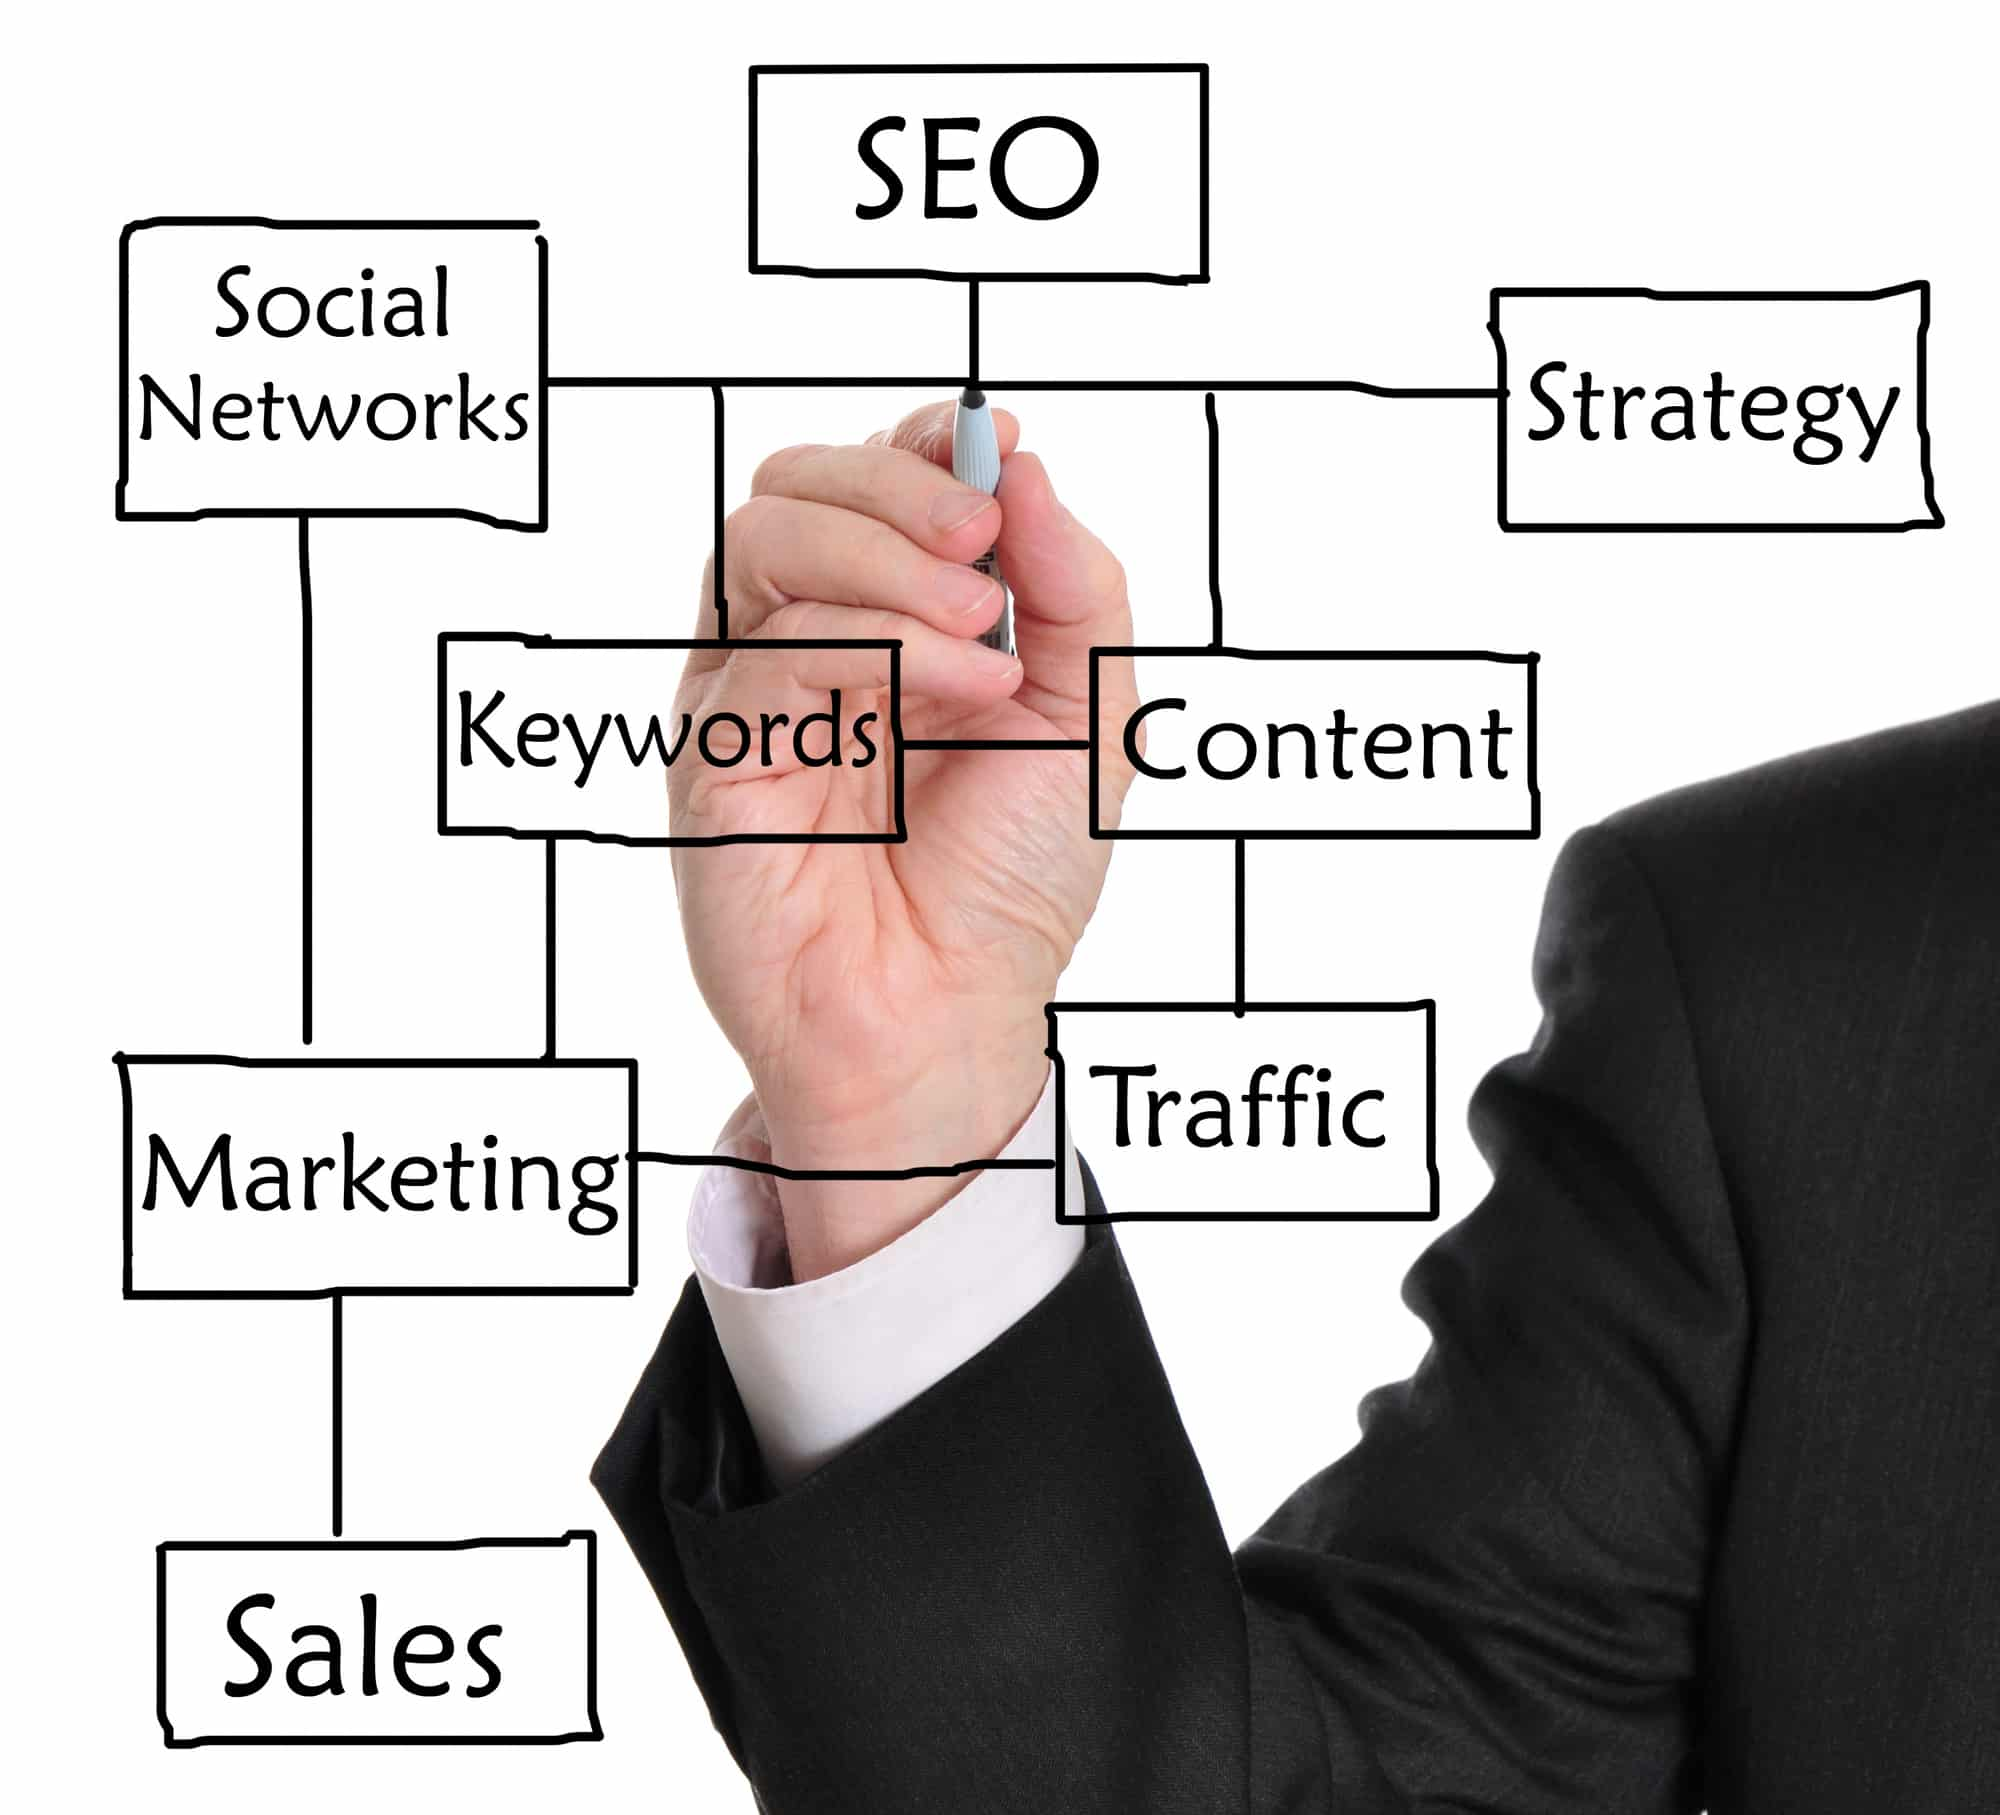 Man in a suit drawing a white hat seo strategy with a black marker